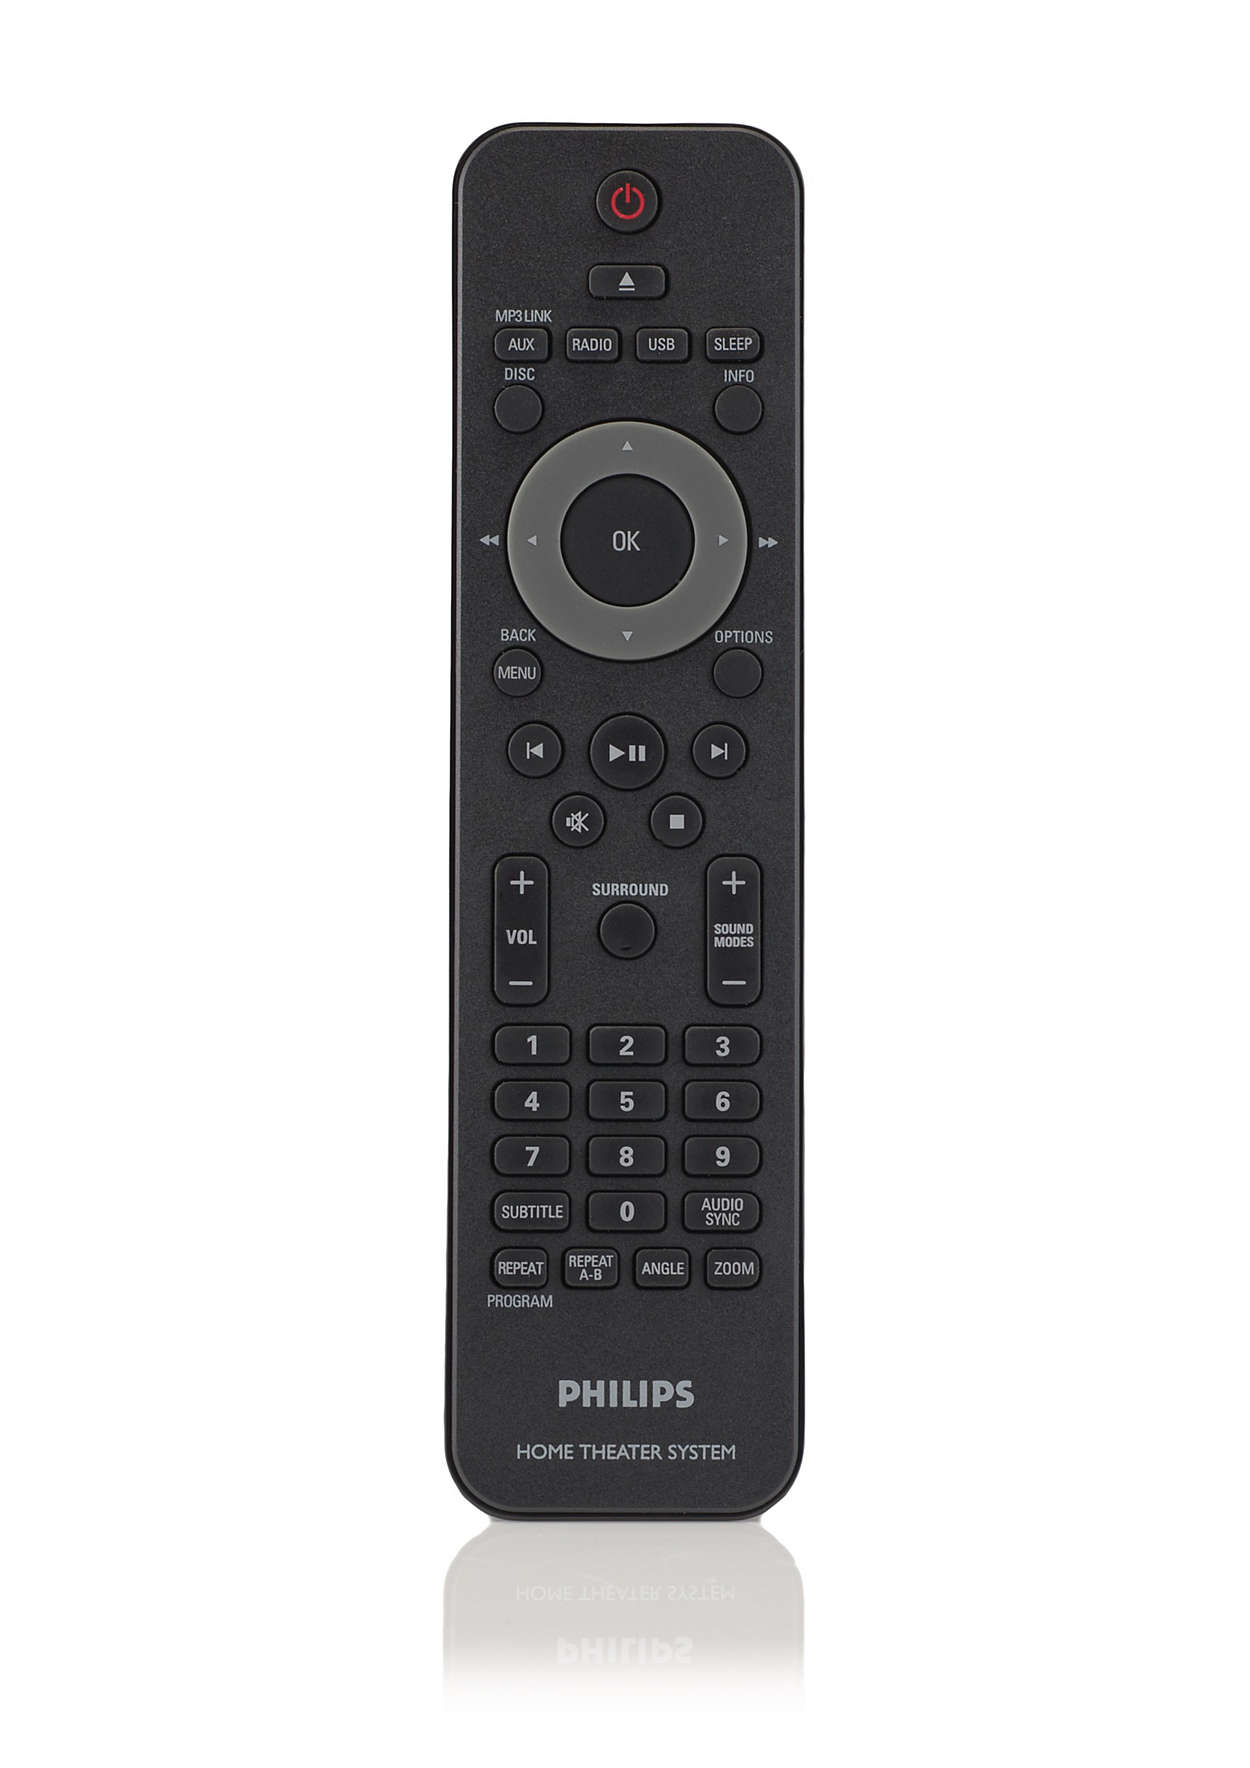 Philips Dvd Home Theater System Hts Remote